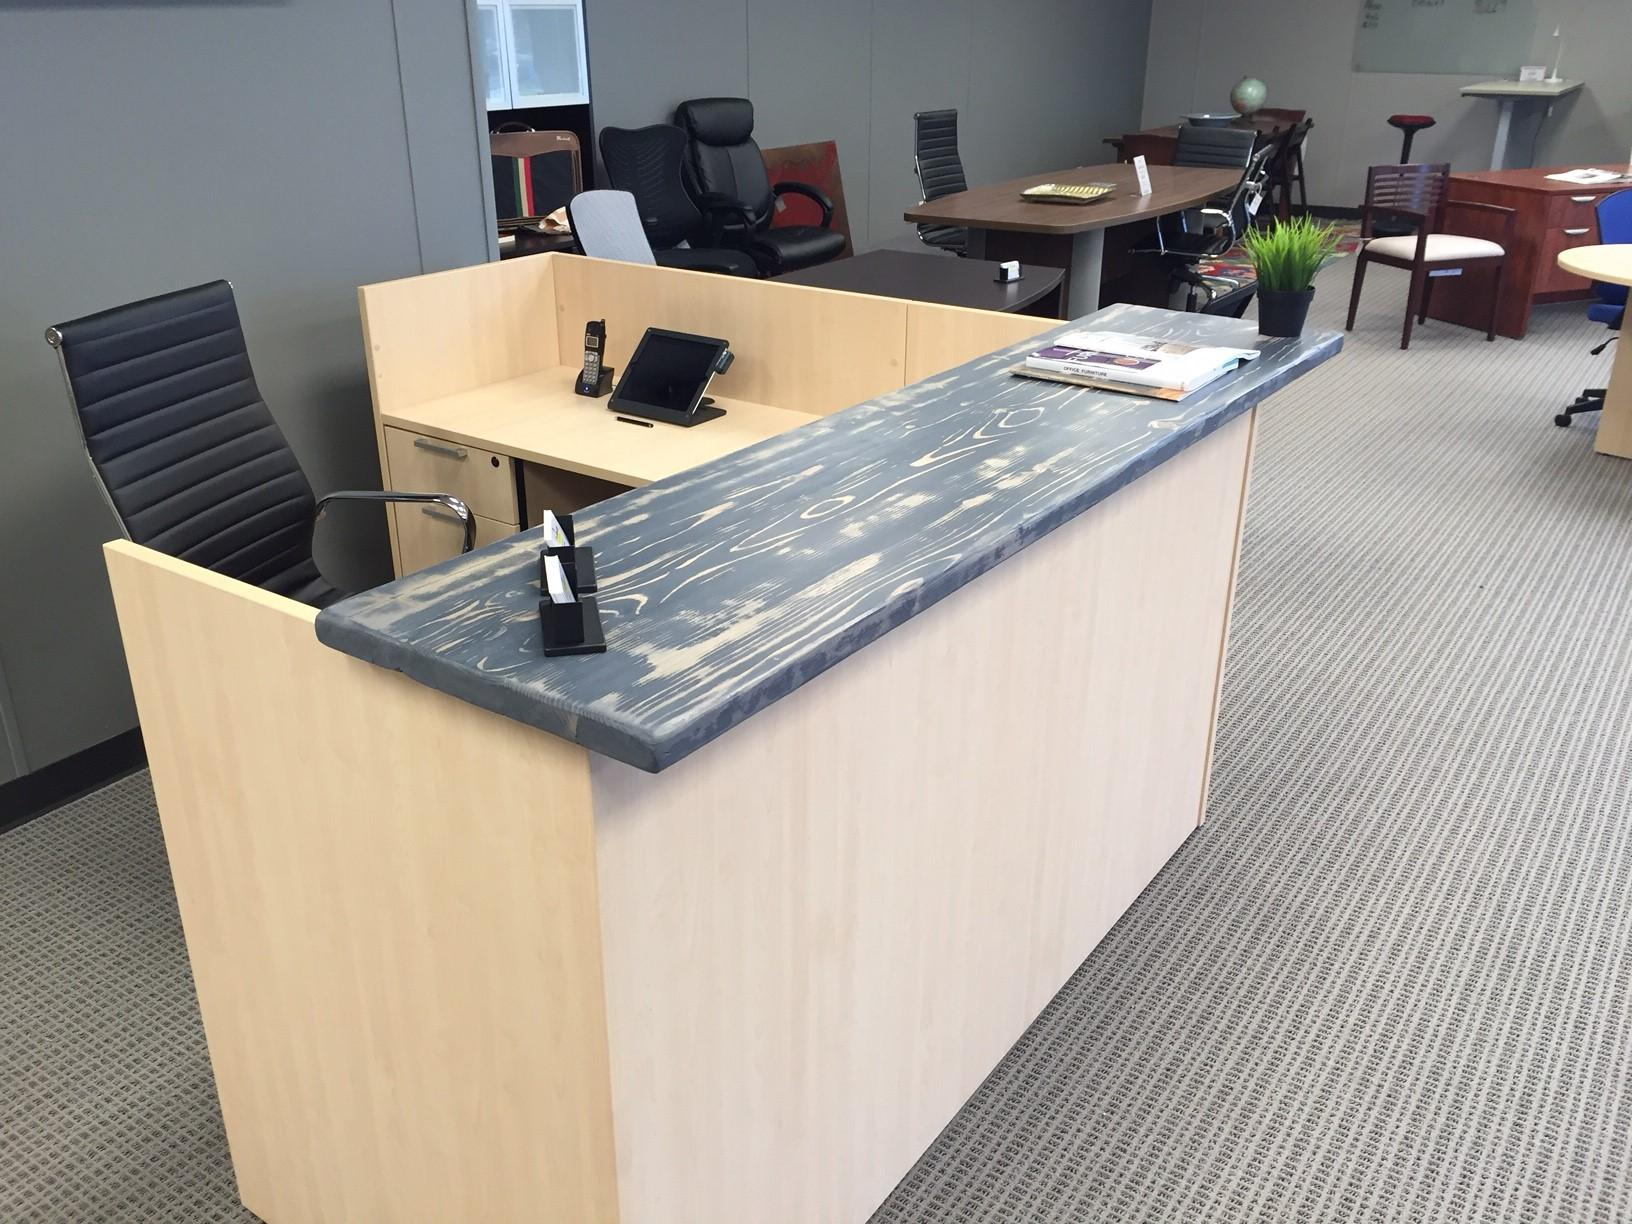 Onesource office furniture in norcross ga 30071 for Kitchen cabinets jimmy carter blvd